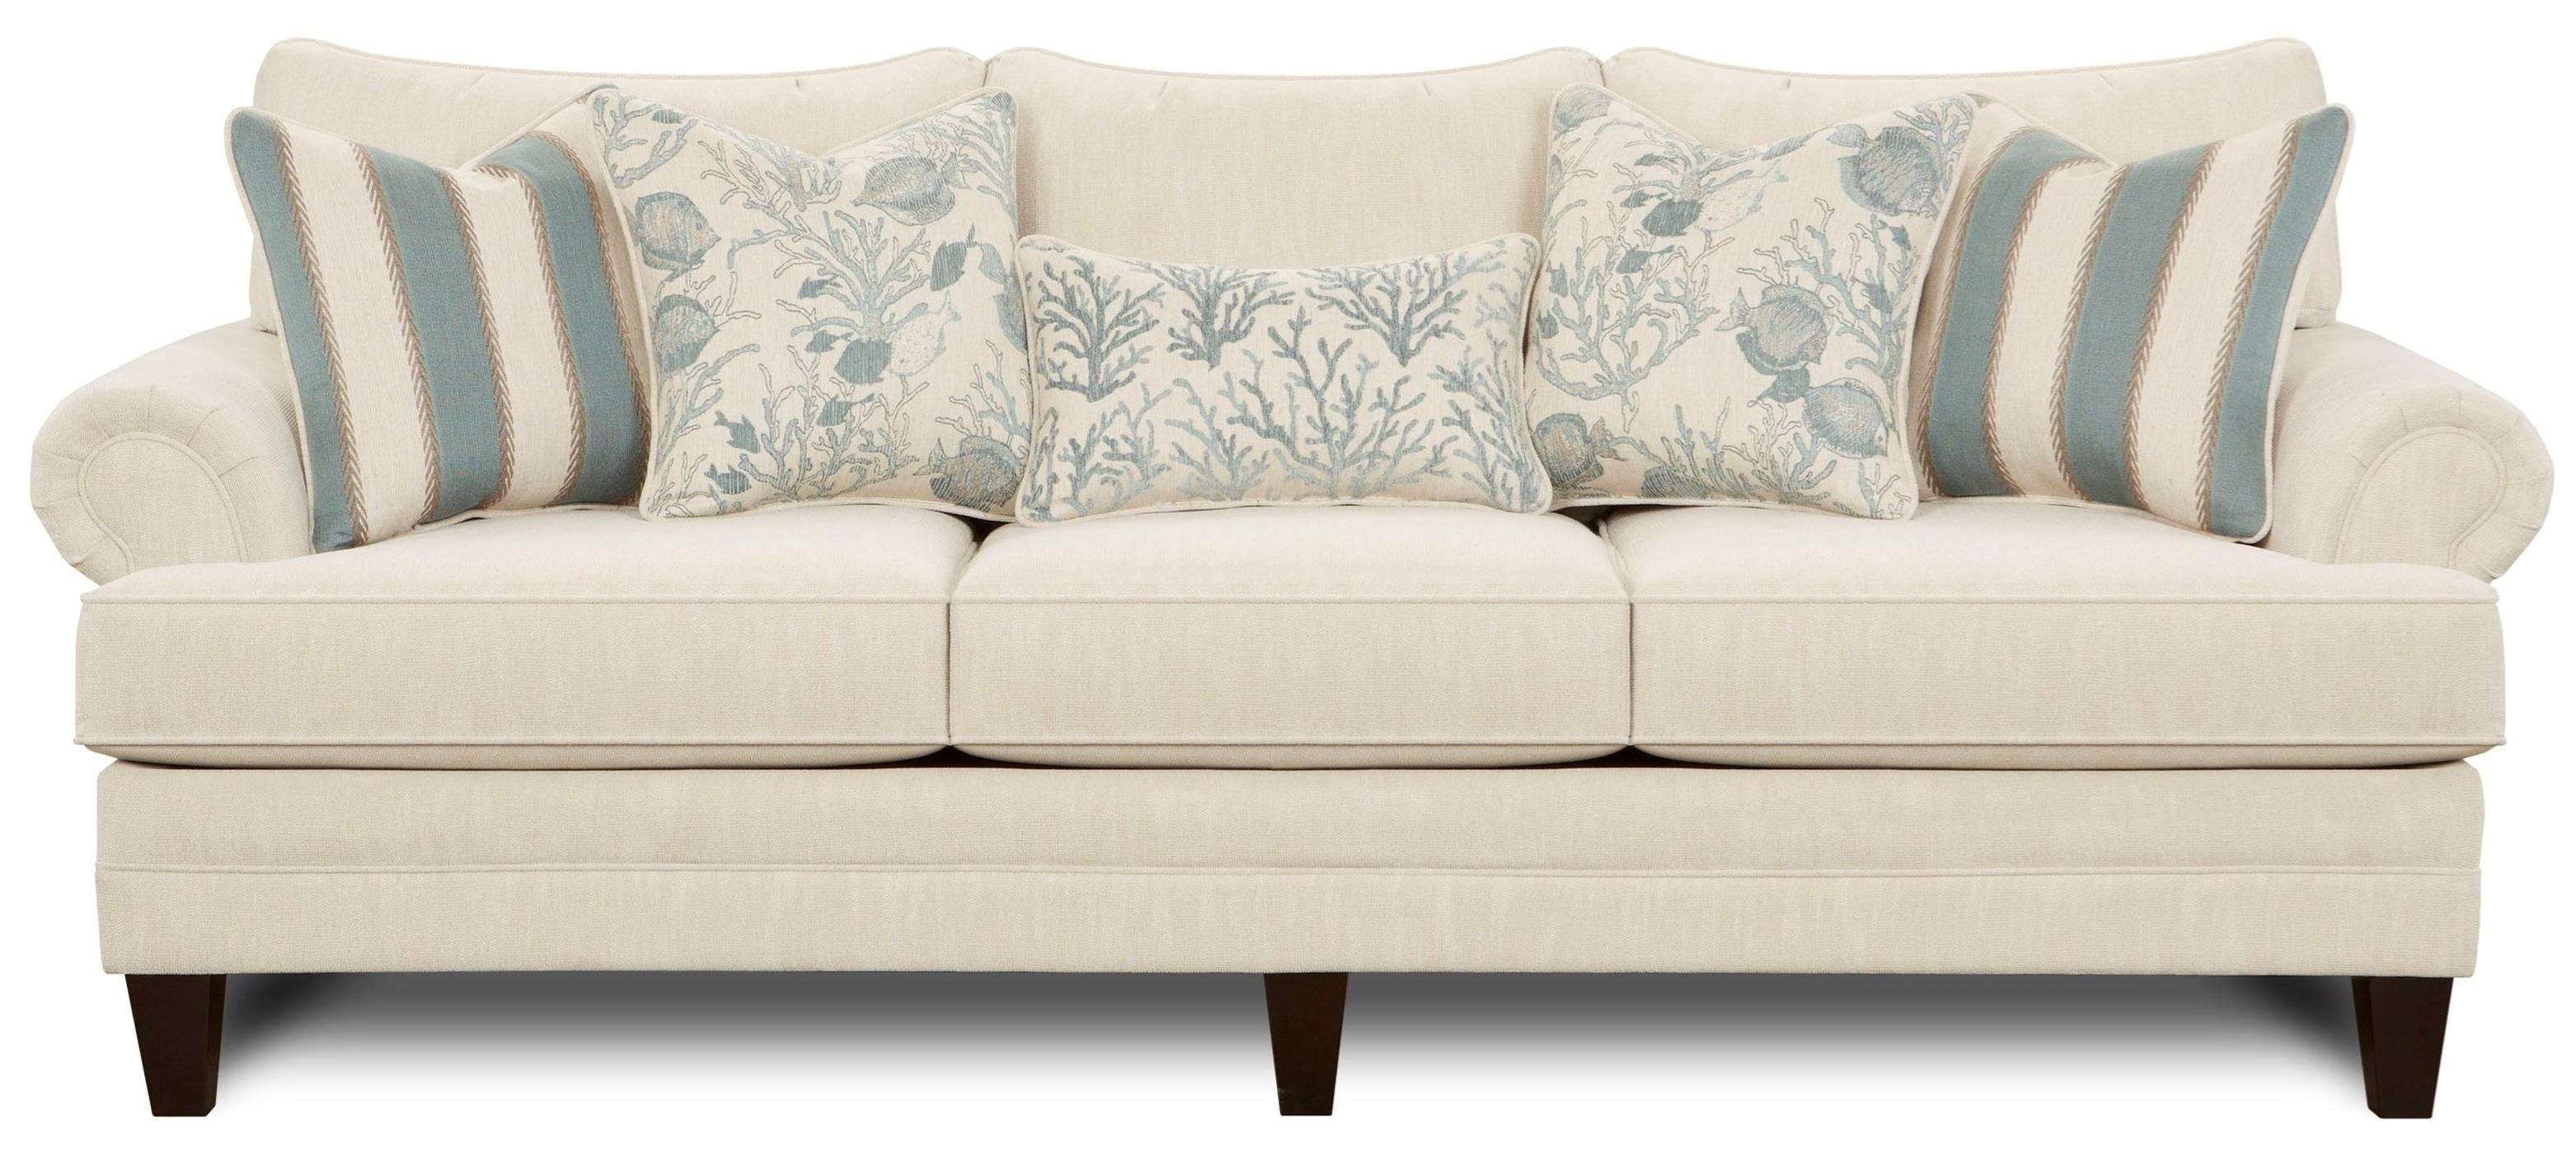 Vfm Signature 2810 Transitional Sofa With Tapered Legs